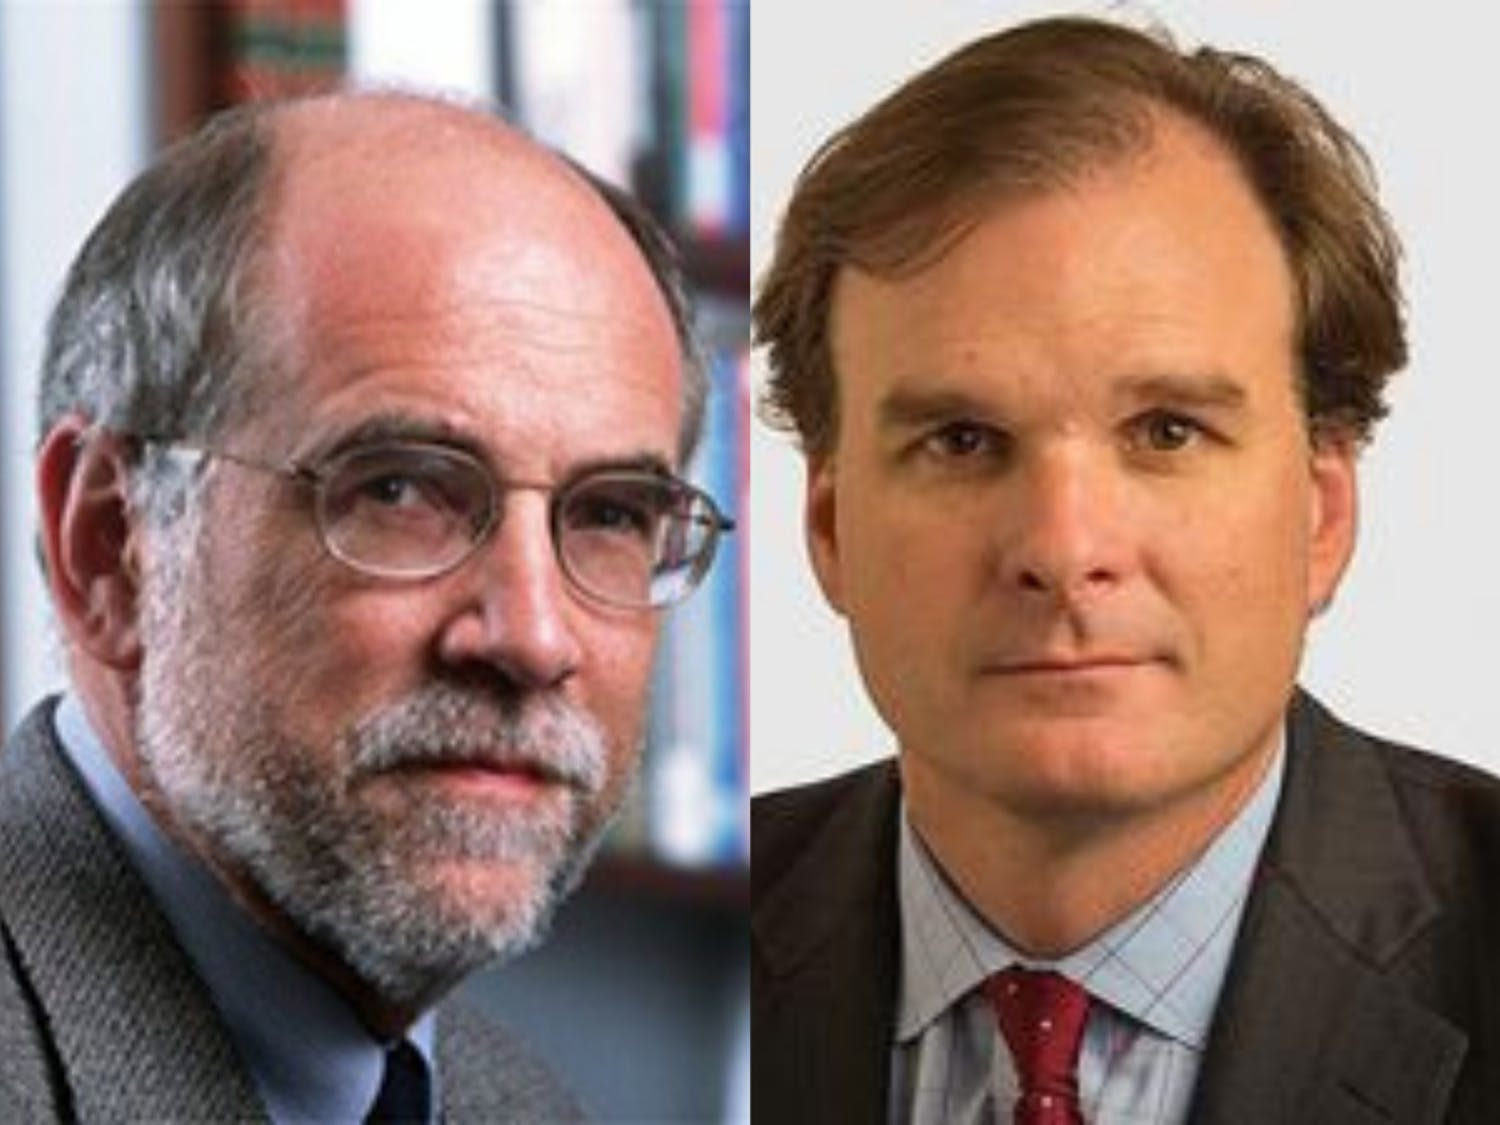 Professors Christopher Schroeder (left) and Robert Bonnie (right) are leading agency review teams as part of Joe Biden's transition team.